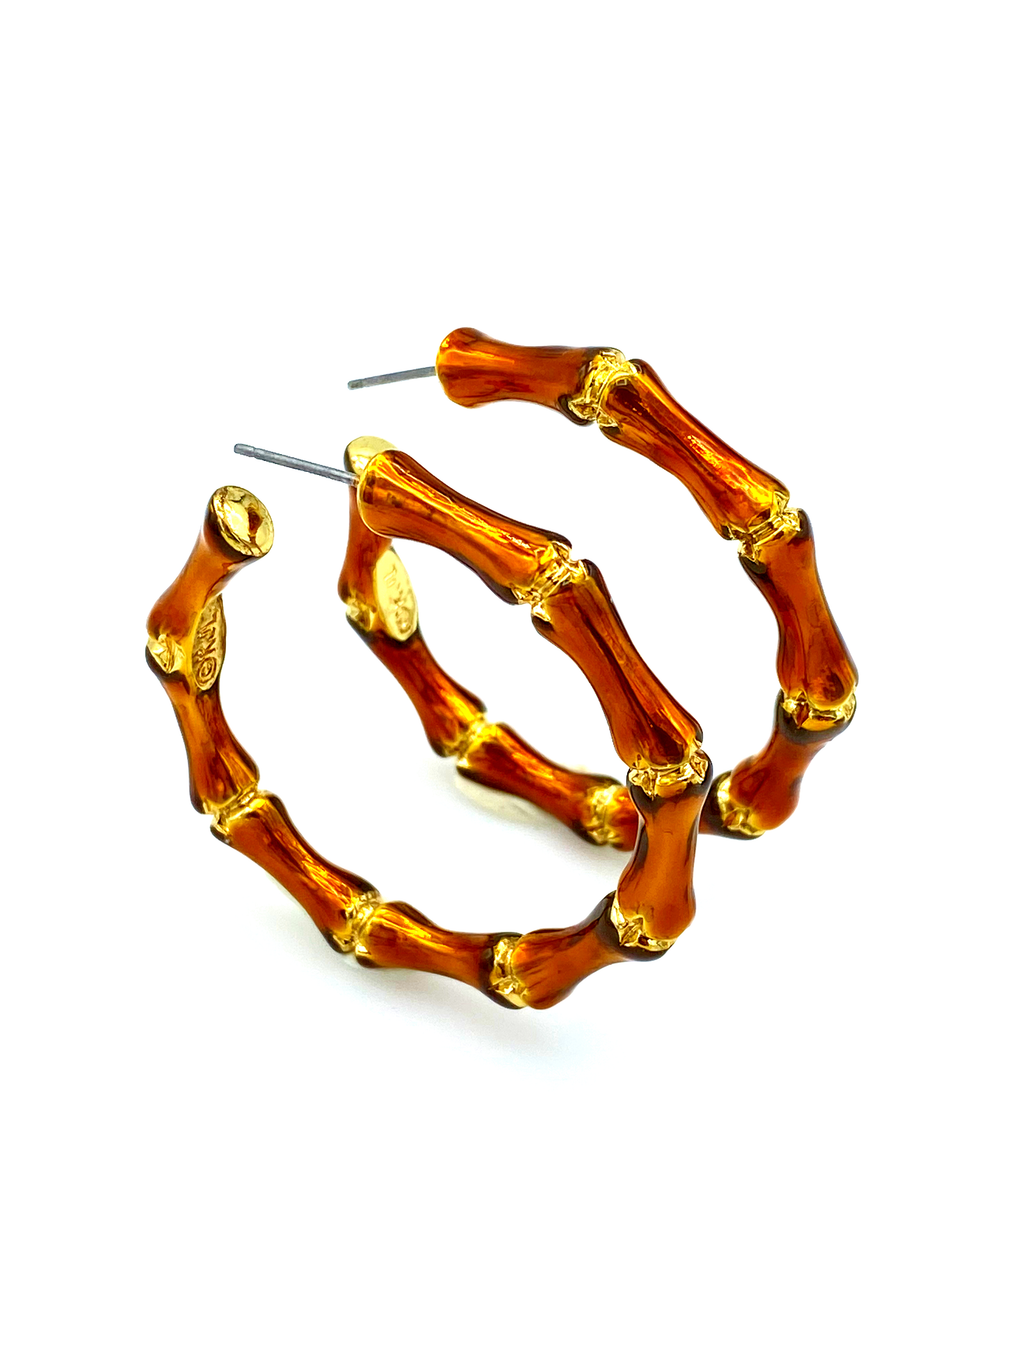 Kenneth Jay Lane Brown Bamboo Hoop Pierced Earrings-Sustainable Fashion with Vintage Style-Trending Designer Fashion-24 Wishes